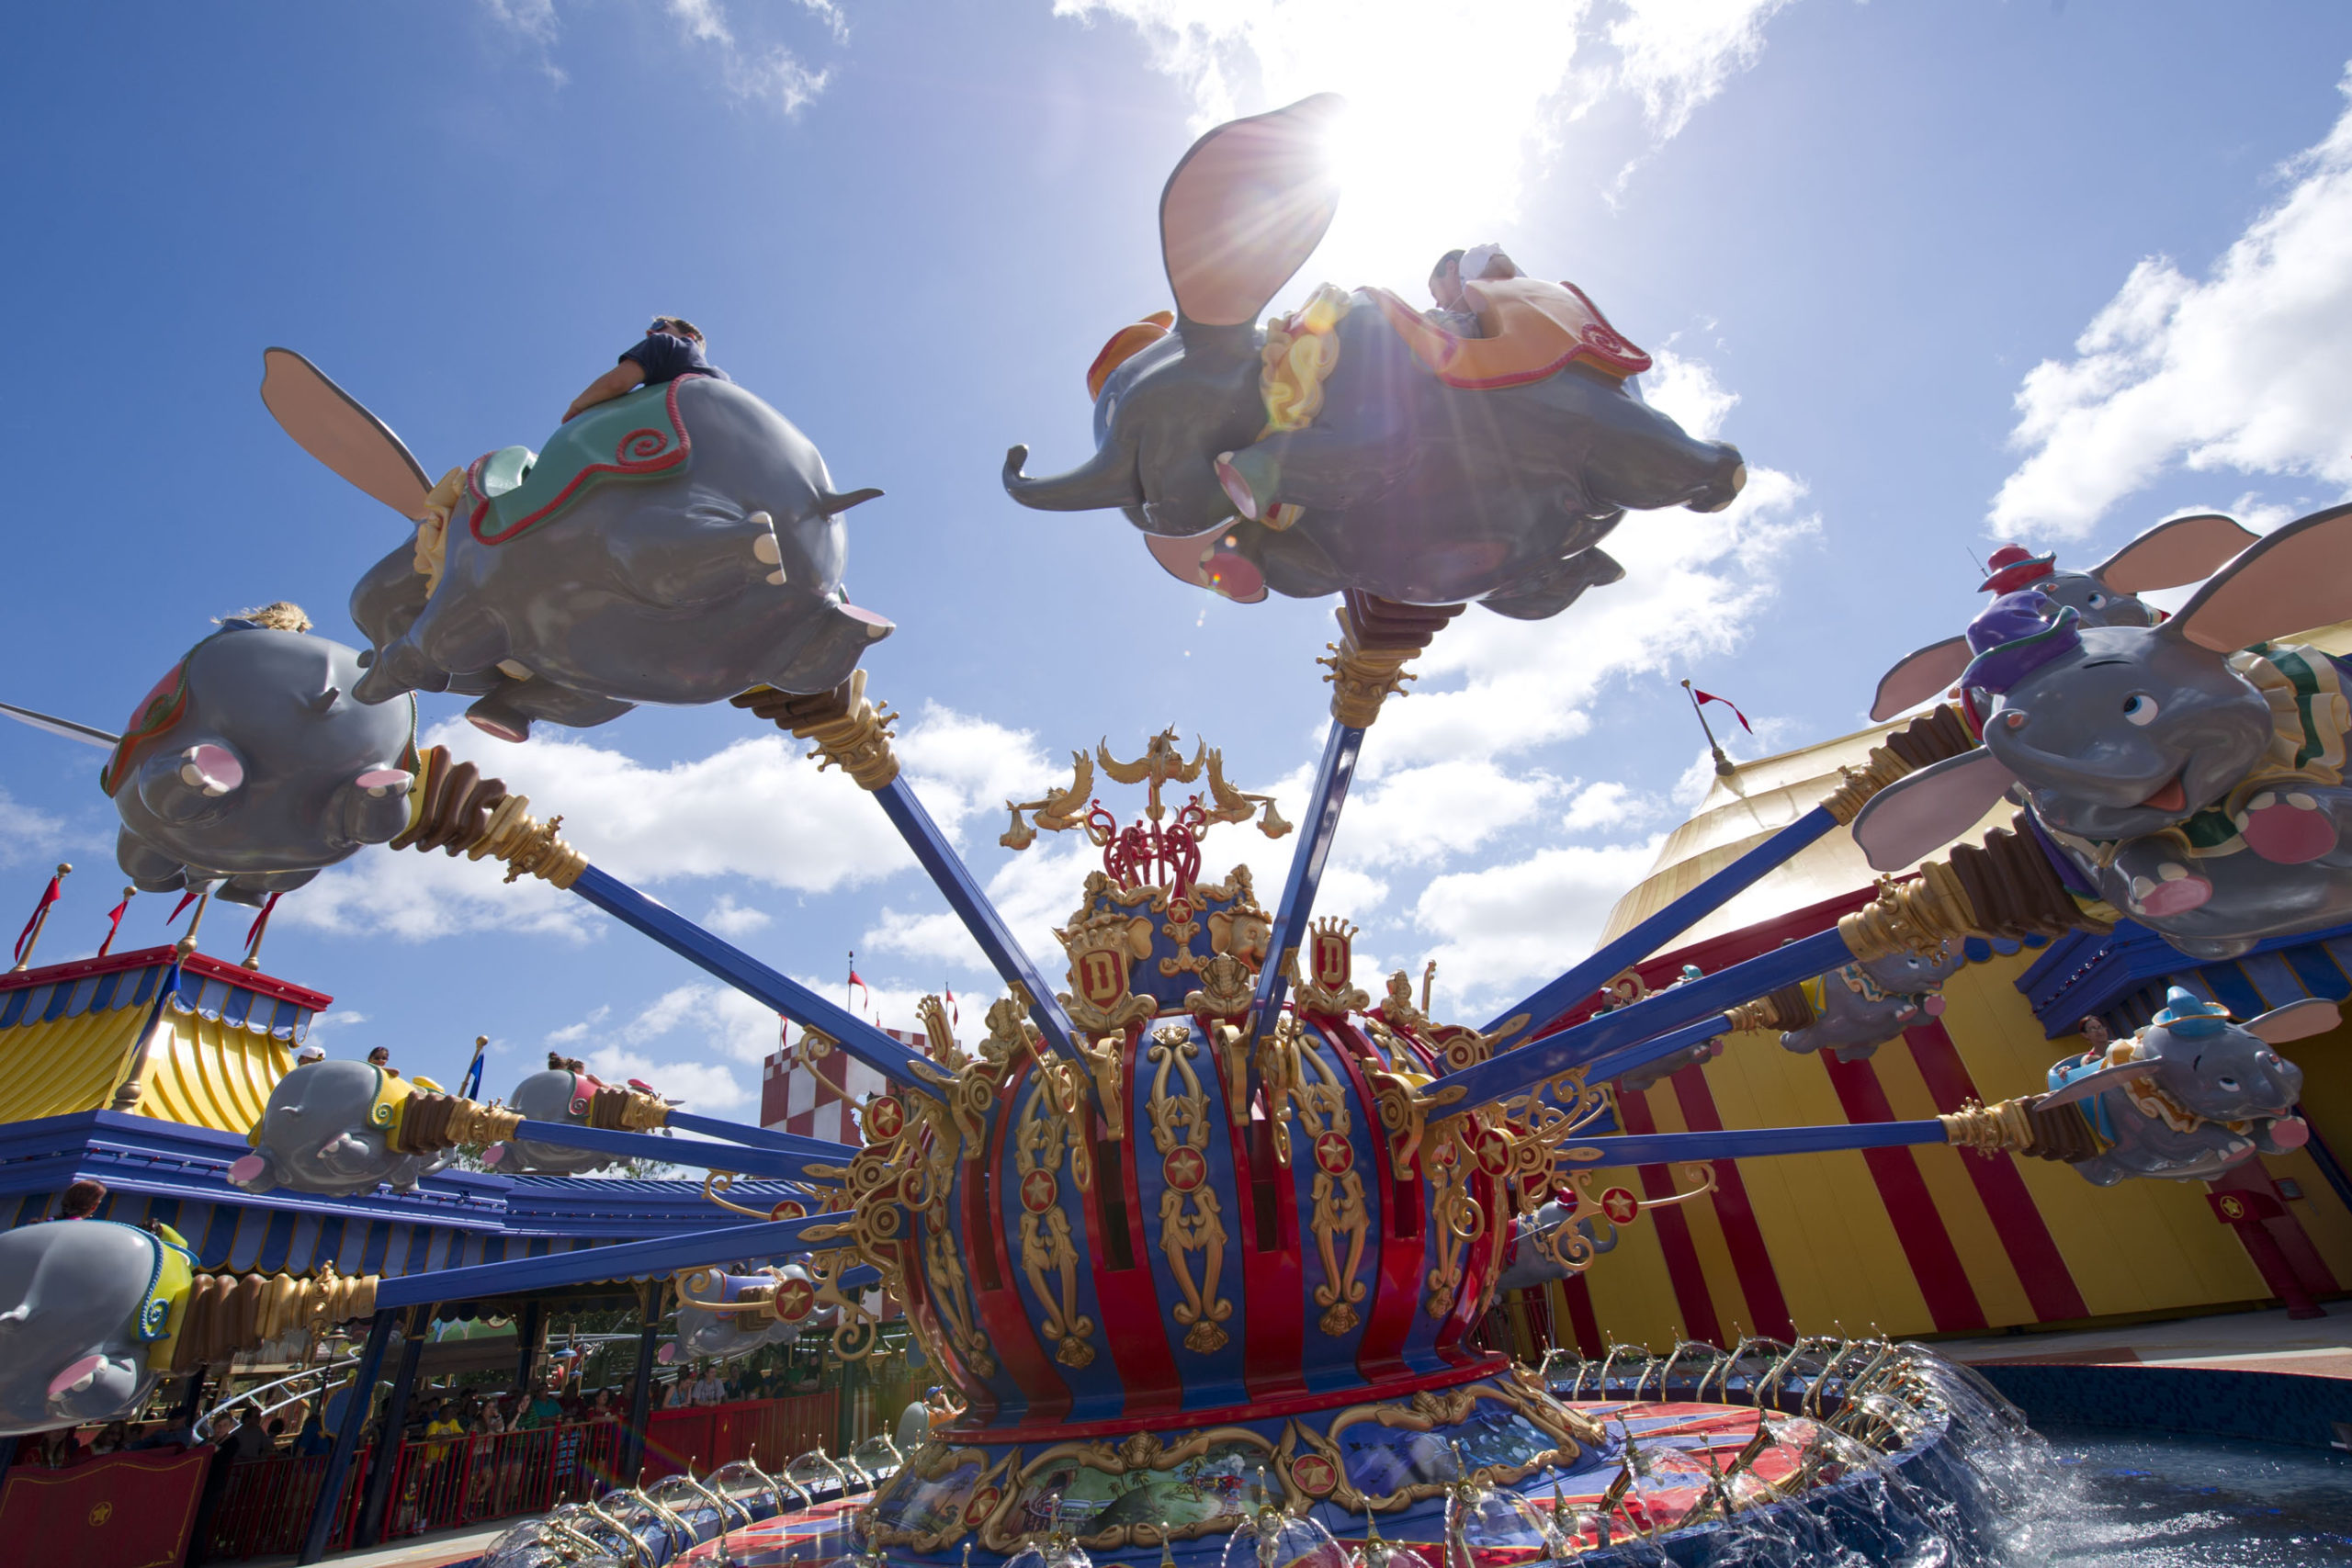 One of the two new Dumbo rides at Magic Kingdom